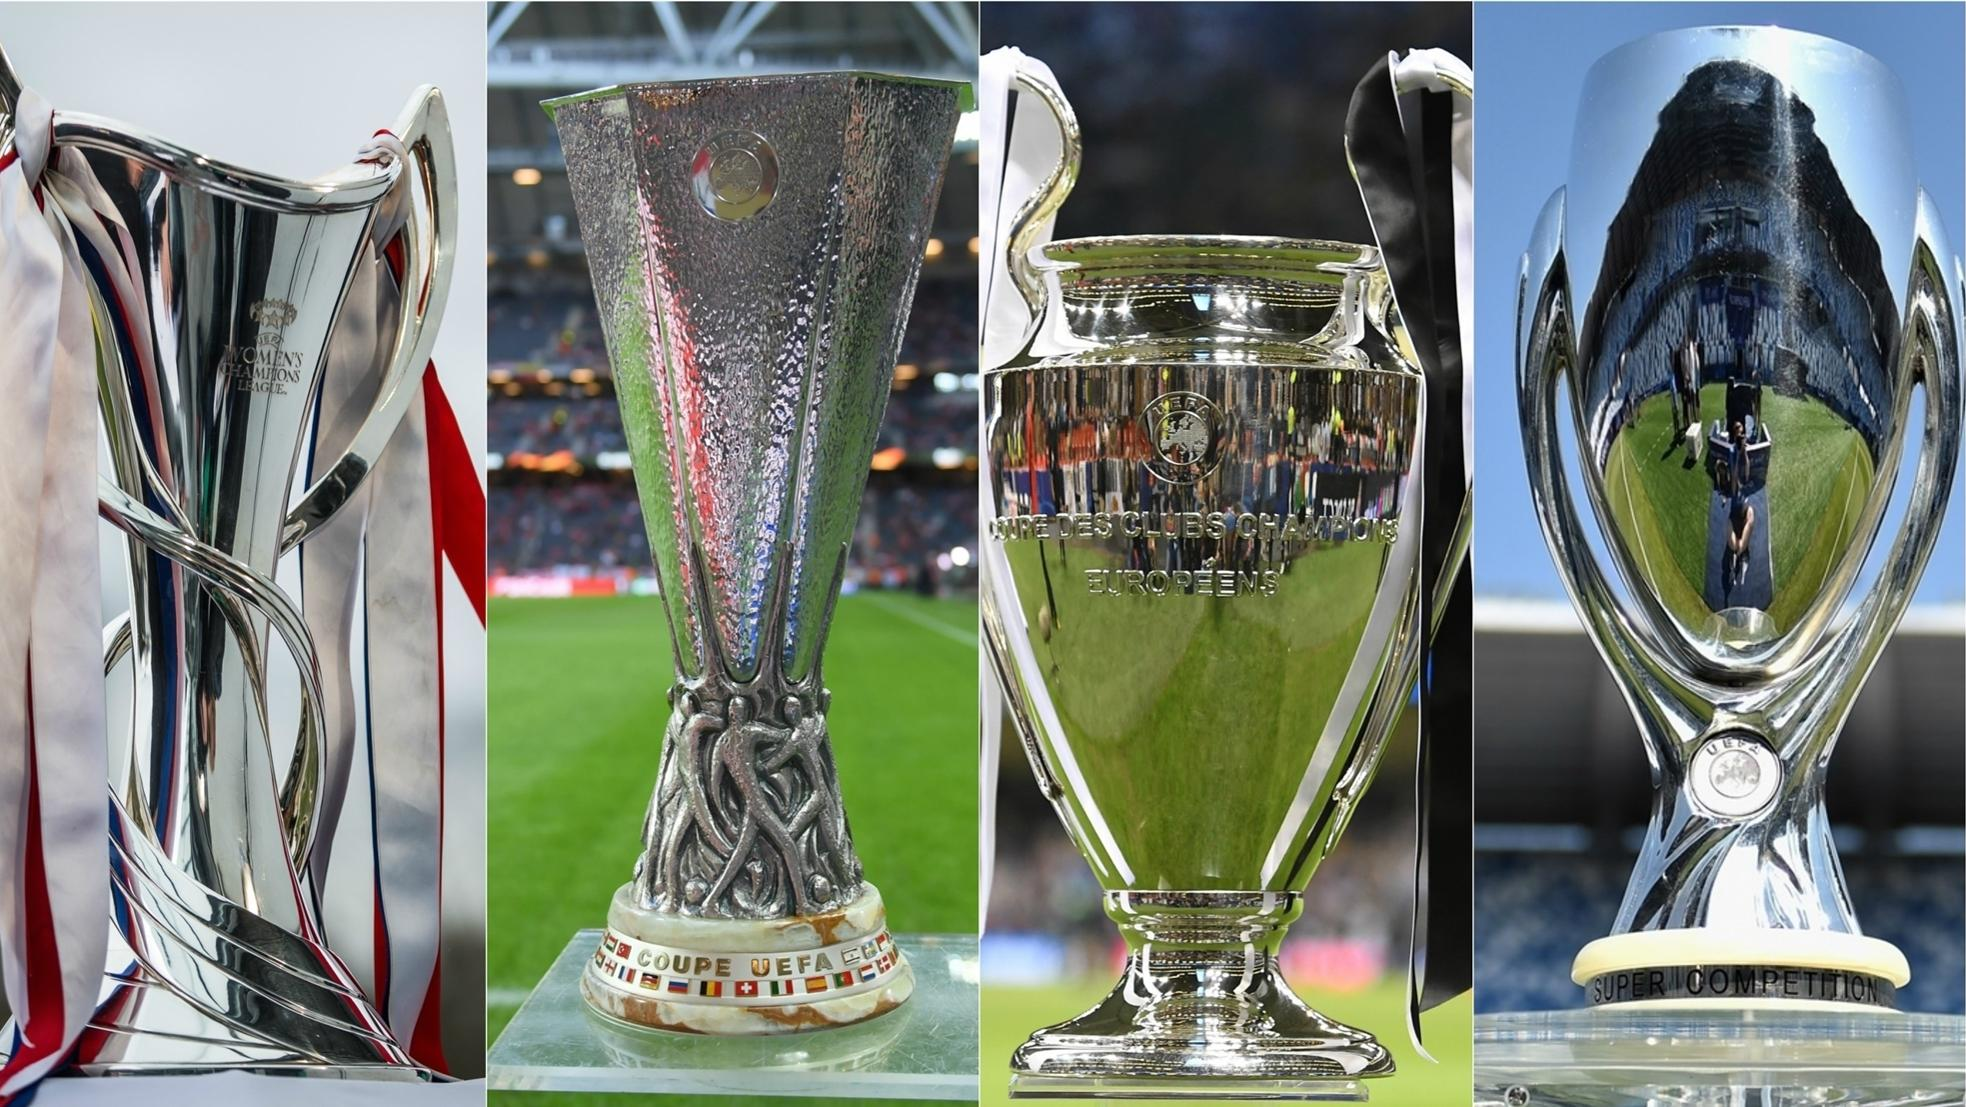 The uefa europa conference league (uecl) is officially underway shortly as teams will be looking to win the competition in its inaugural season. Décisions concernant les compétitions UEFA attendues le 17